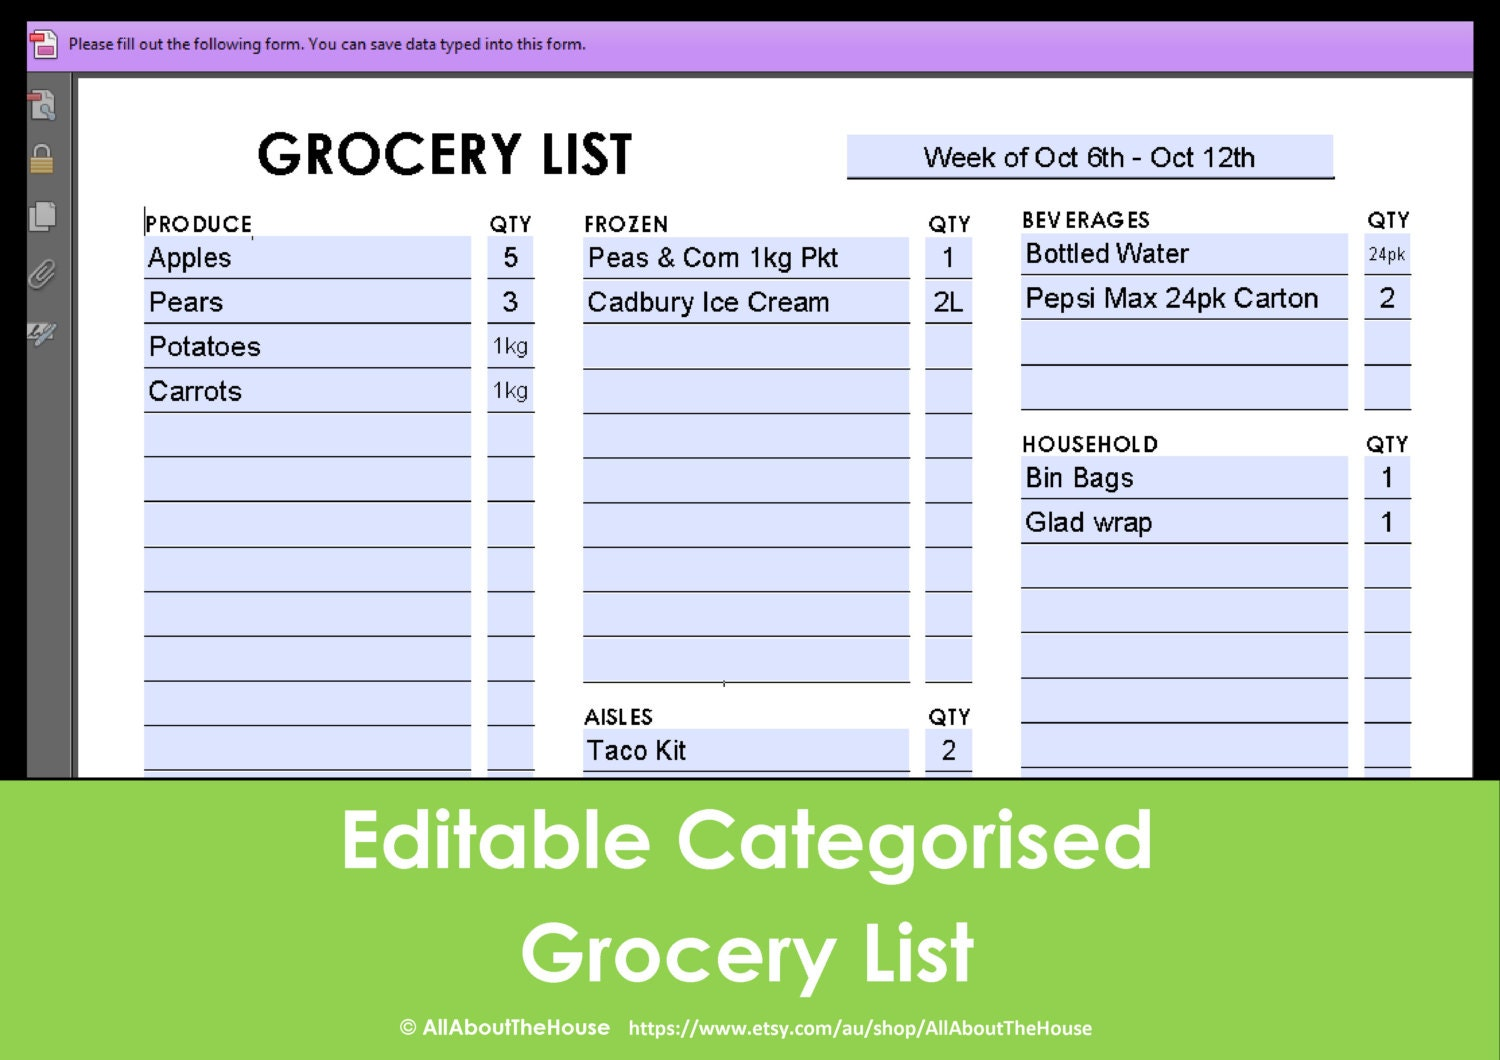 Printable Grocery List Editable Categorised Shopping